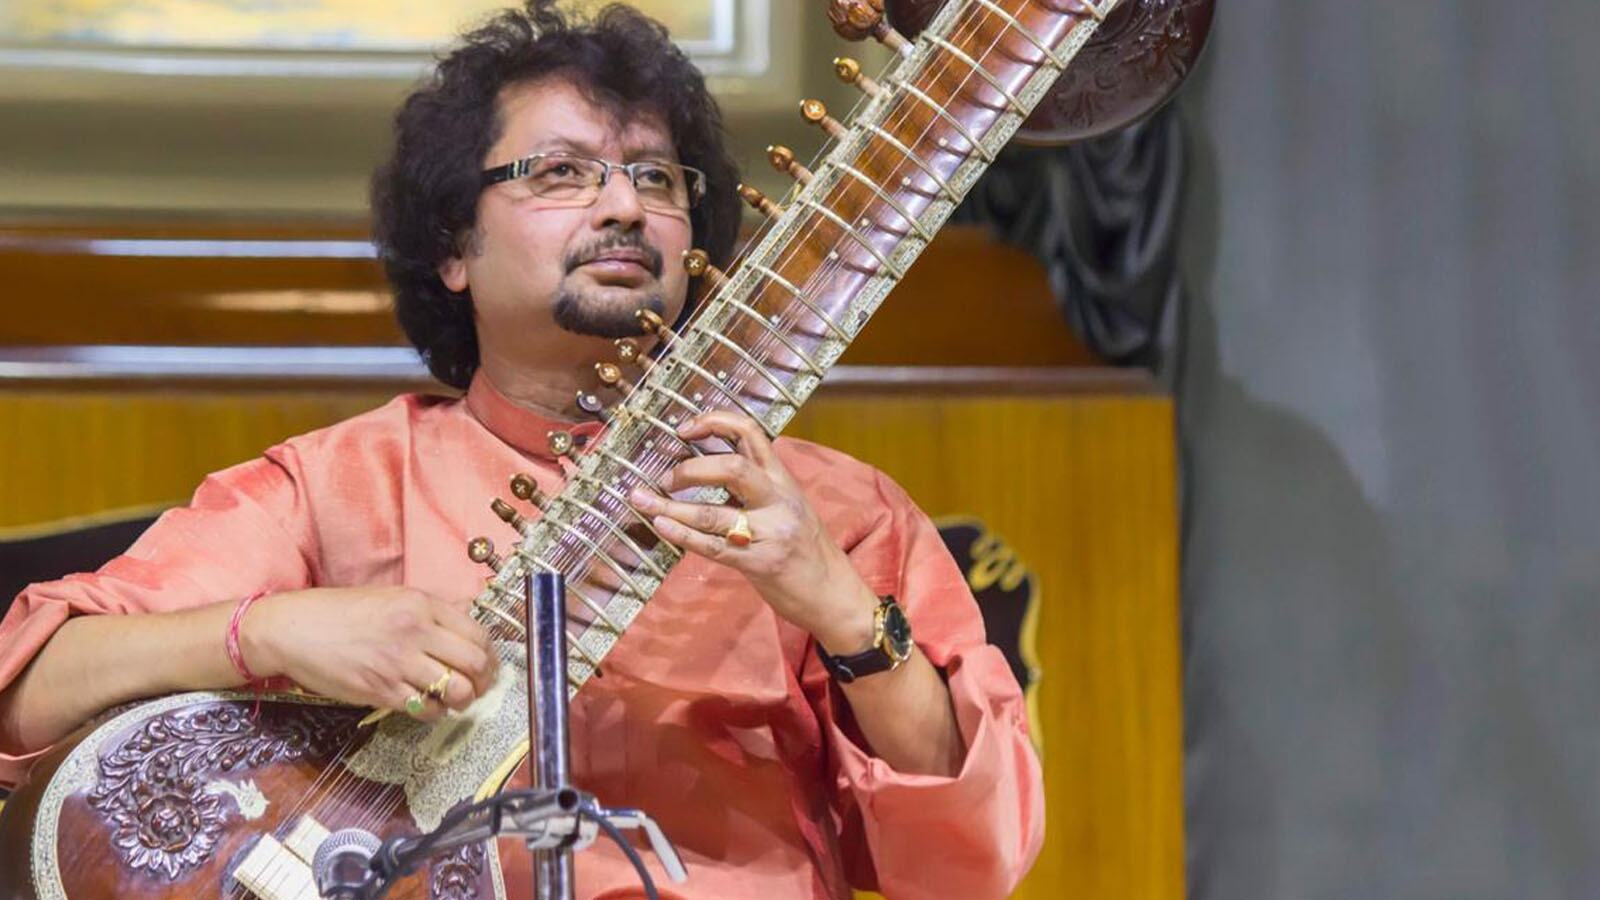 Sanjay Guha, sitar player